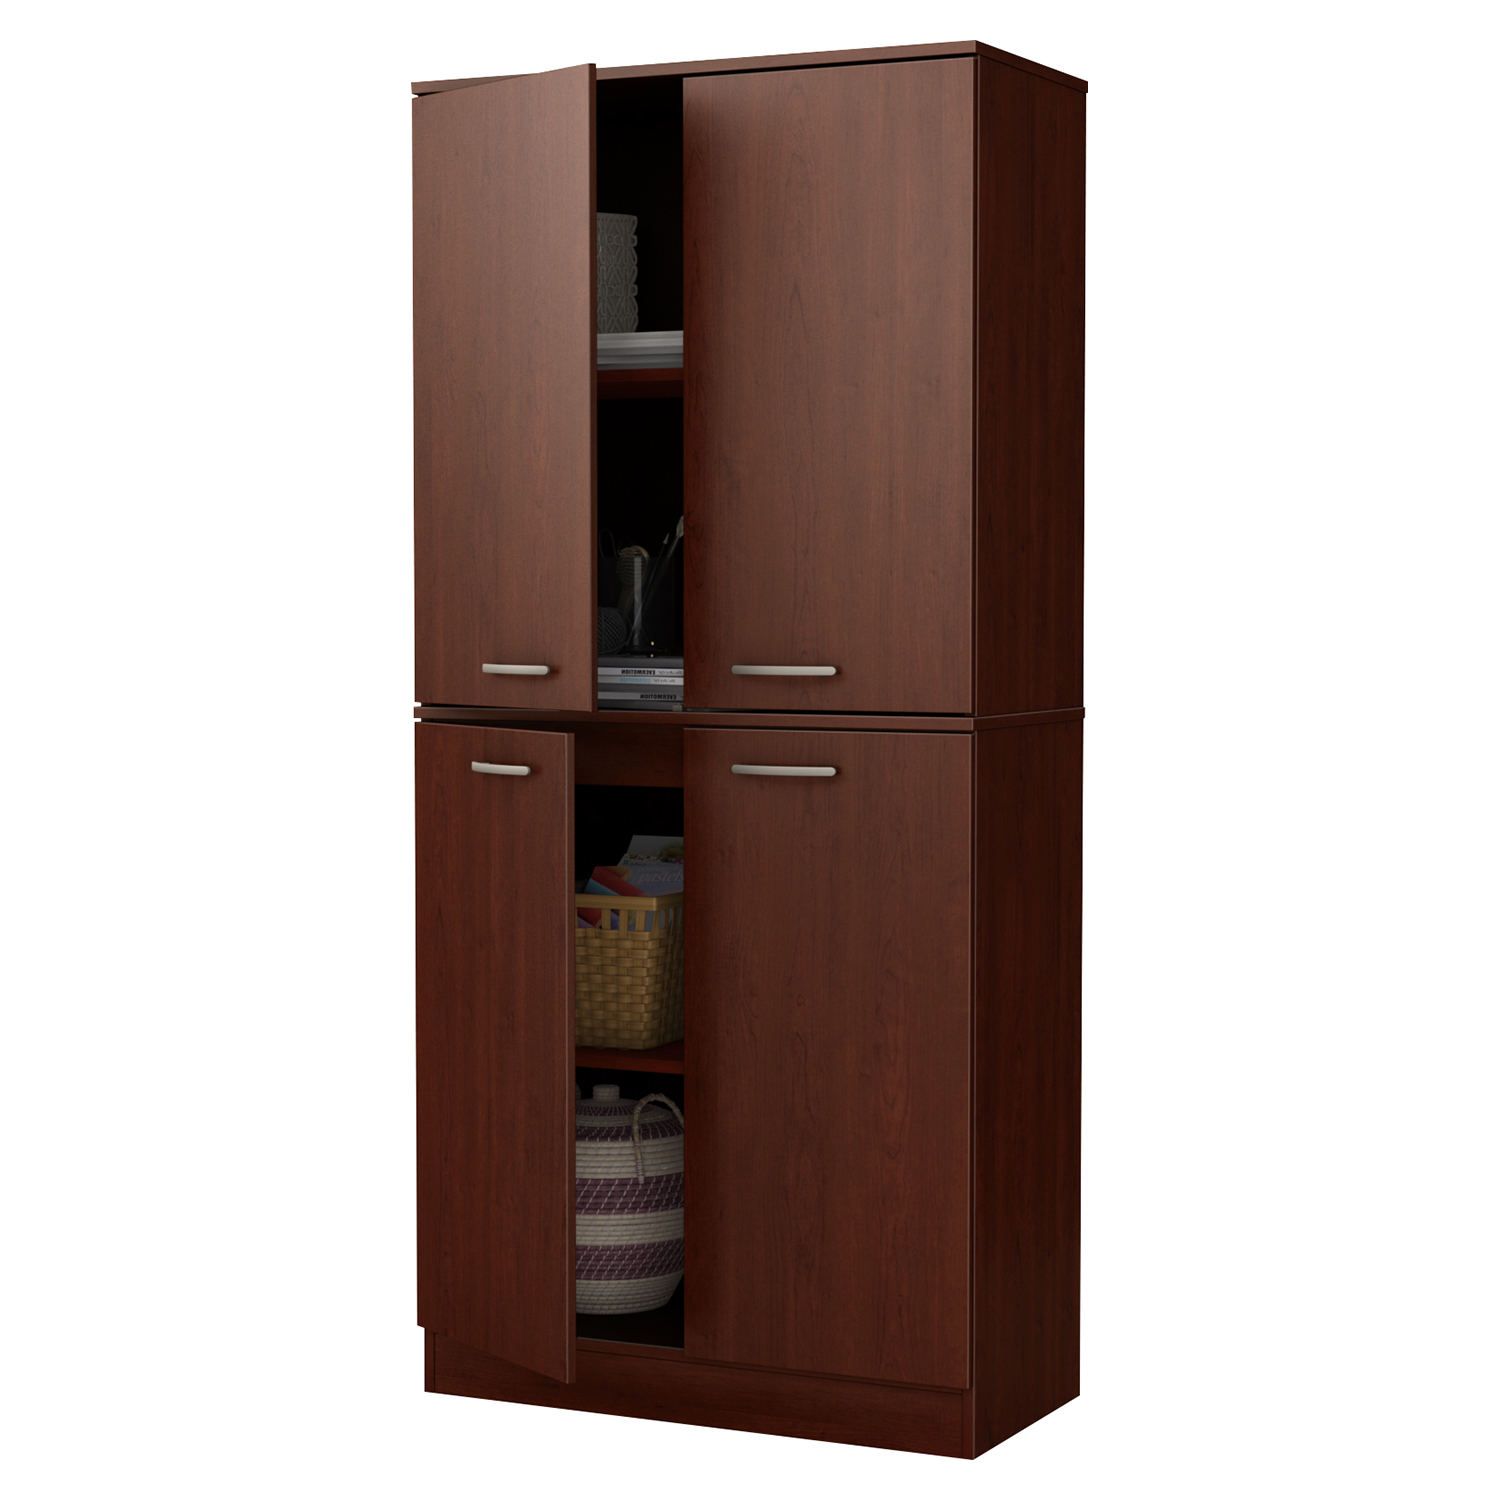 Axess Armoire - 4 Doors, Royal Cherry